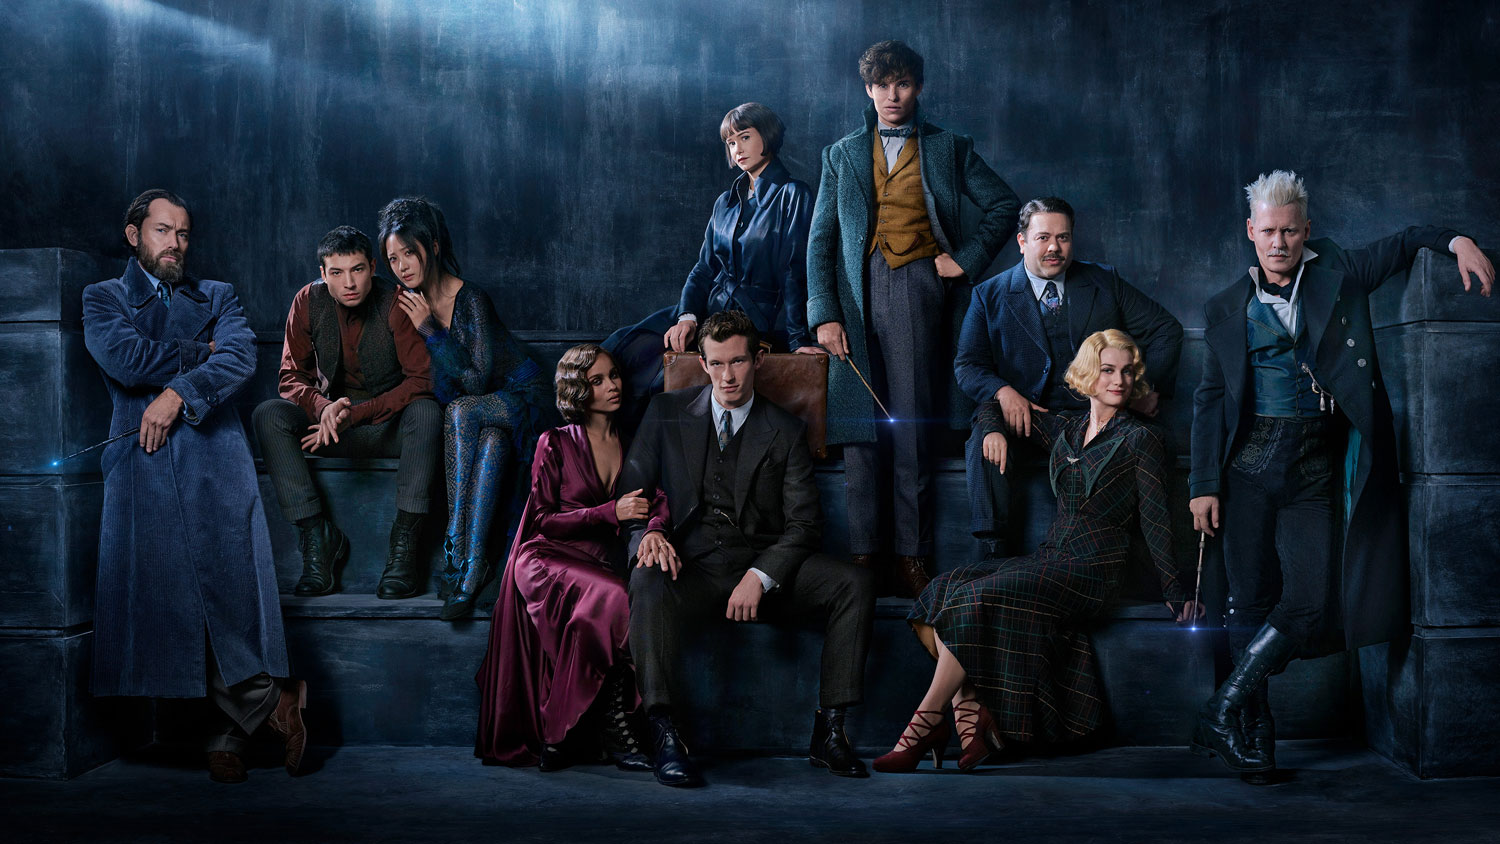 First look at Fantastic Beasts: The Crimes of Grindelwald